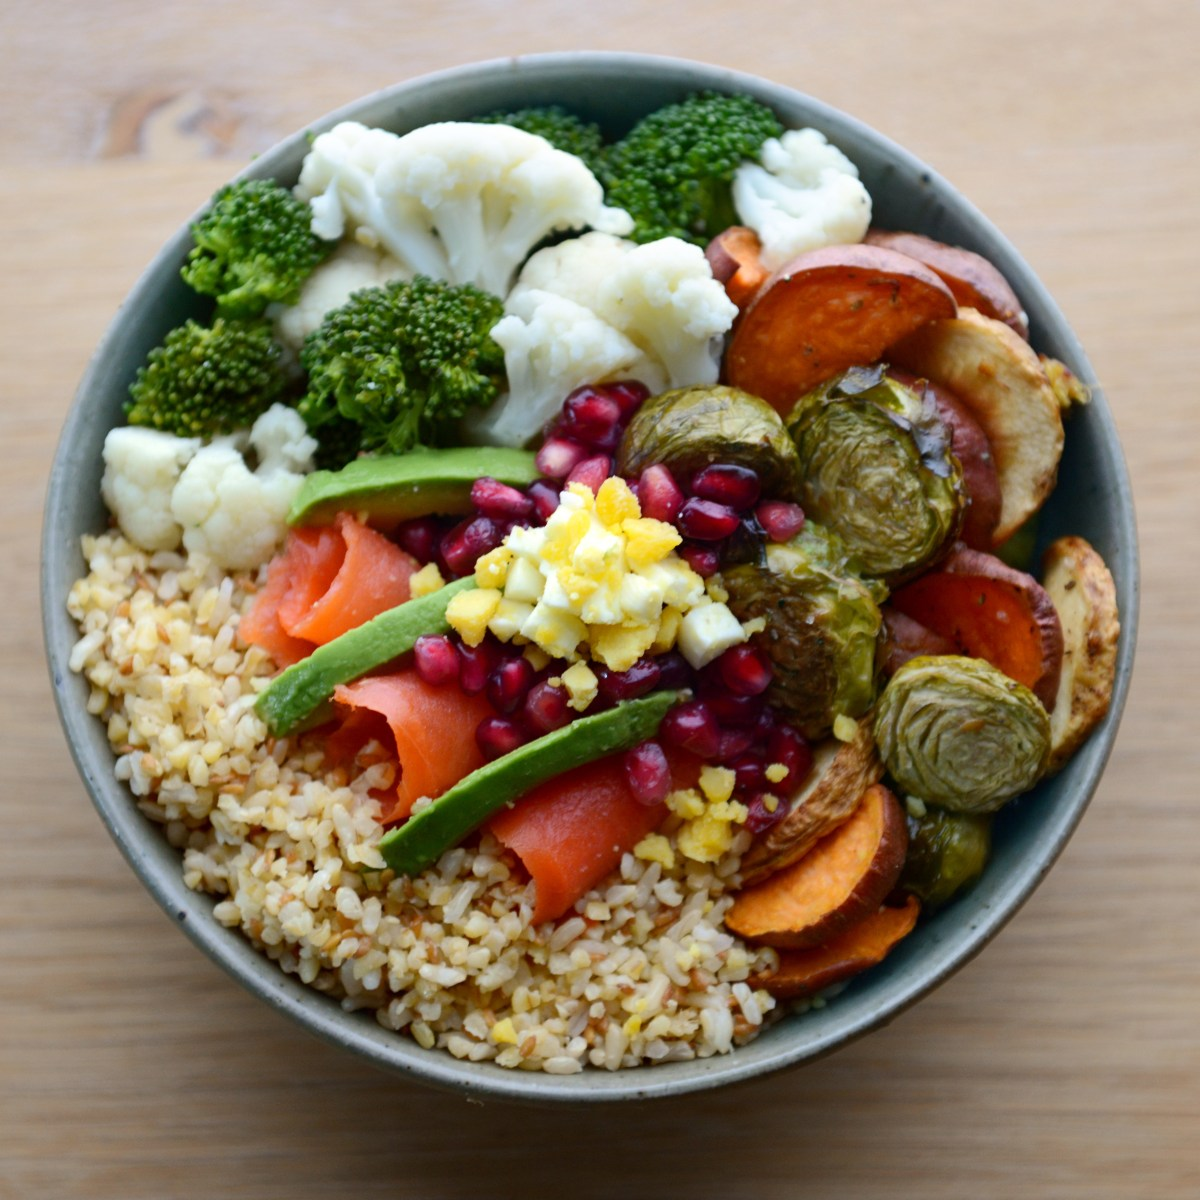 Tips for Building A Grain Bowl